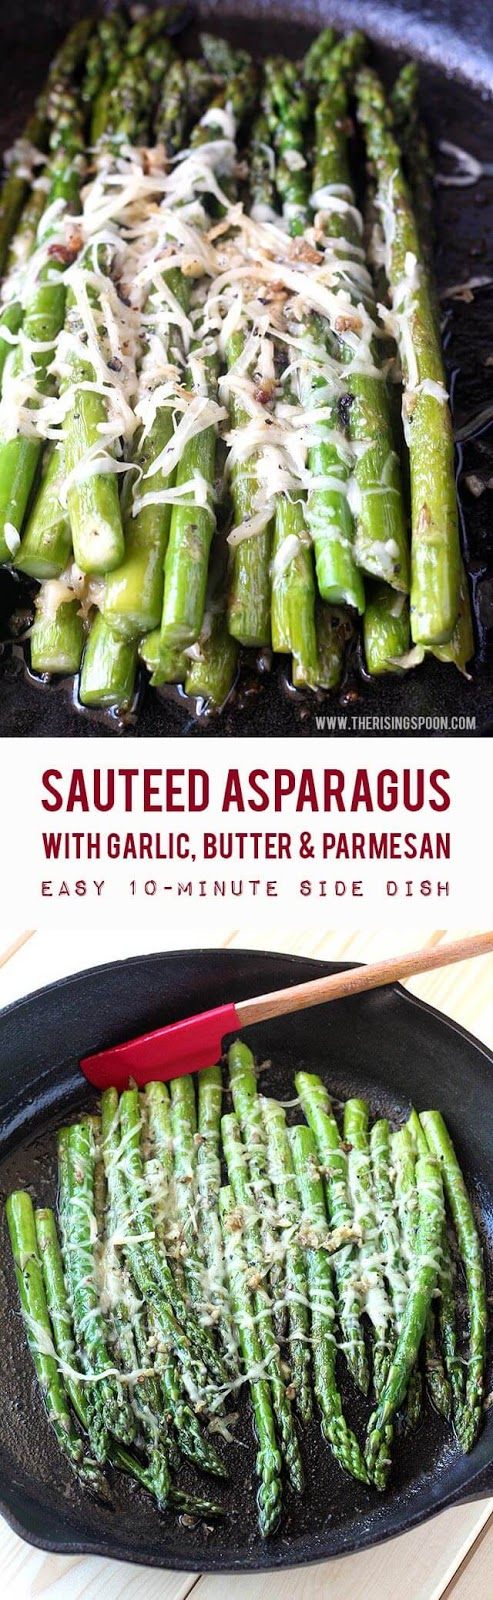 A quick & easy sauteed asparagus recipe with butter, garlic & shredded Parmesan cheese. In about 10 minutes or less, you'll have a simple side dish made with real food ingredients to accompany any meal. Keep reading to learn more about the health benefits of asparagus and why you should eat it with a healthy fat.